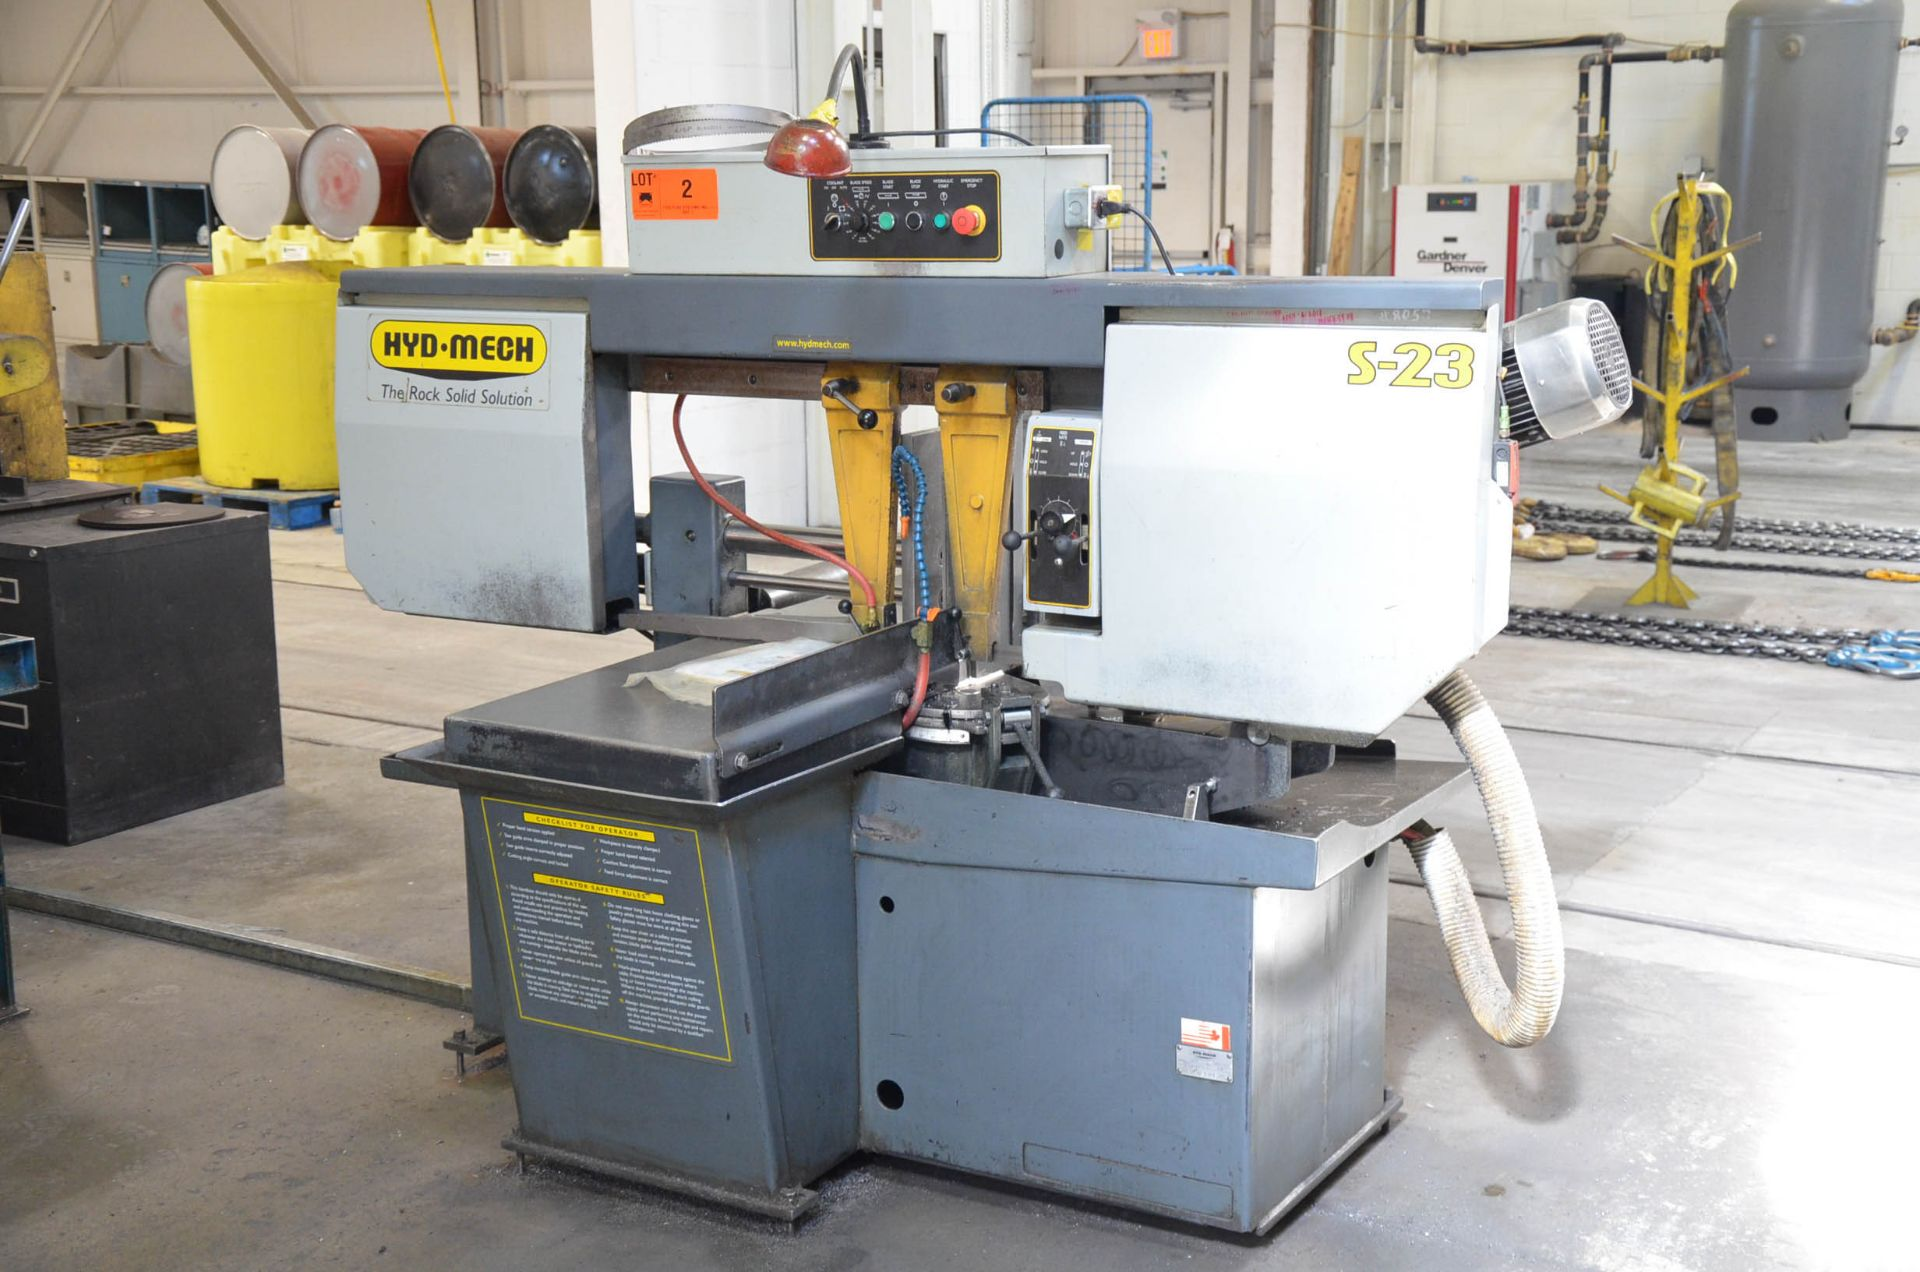 """HYD-MECH S-23 HORIZONTAL BAND SAW WITH 20"""" CAPACITY, HYDRAULIC VISE, COOLANT, CHIP AUGER, 600V/3PH/ - Image 2 of 8"""